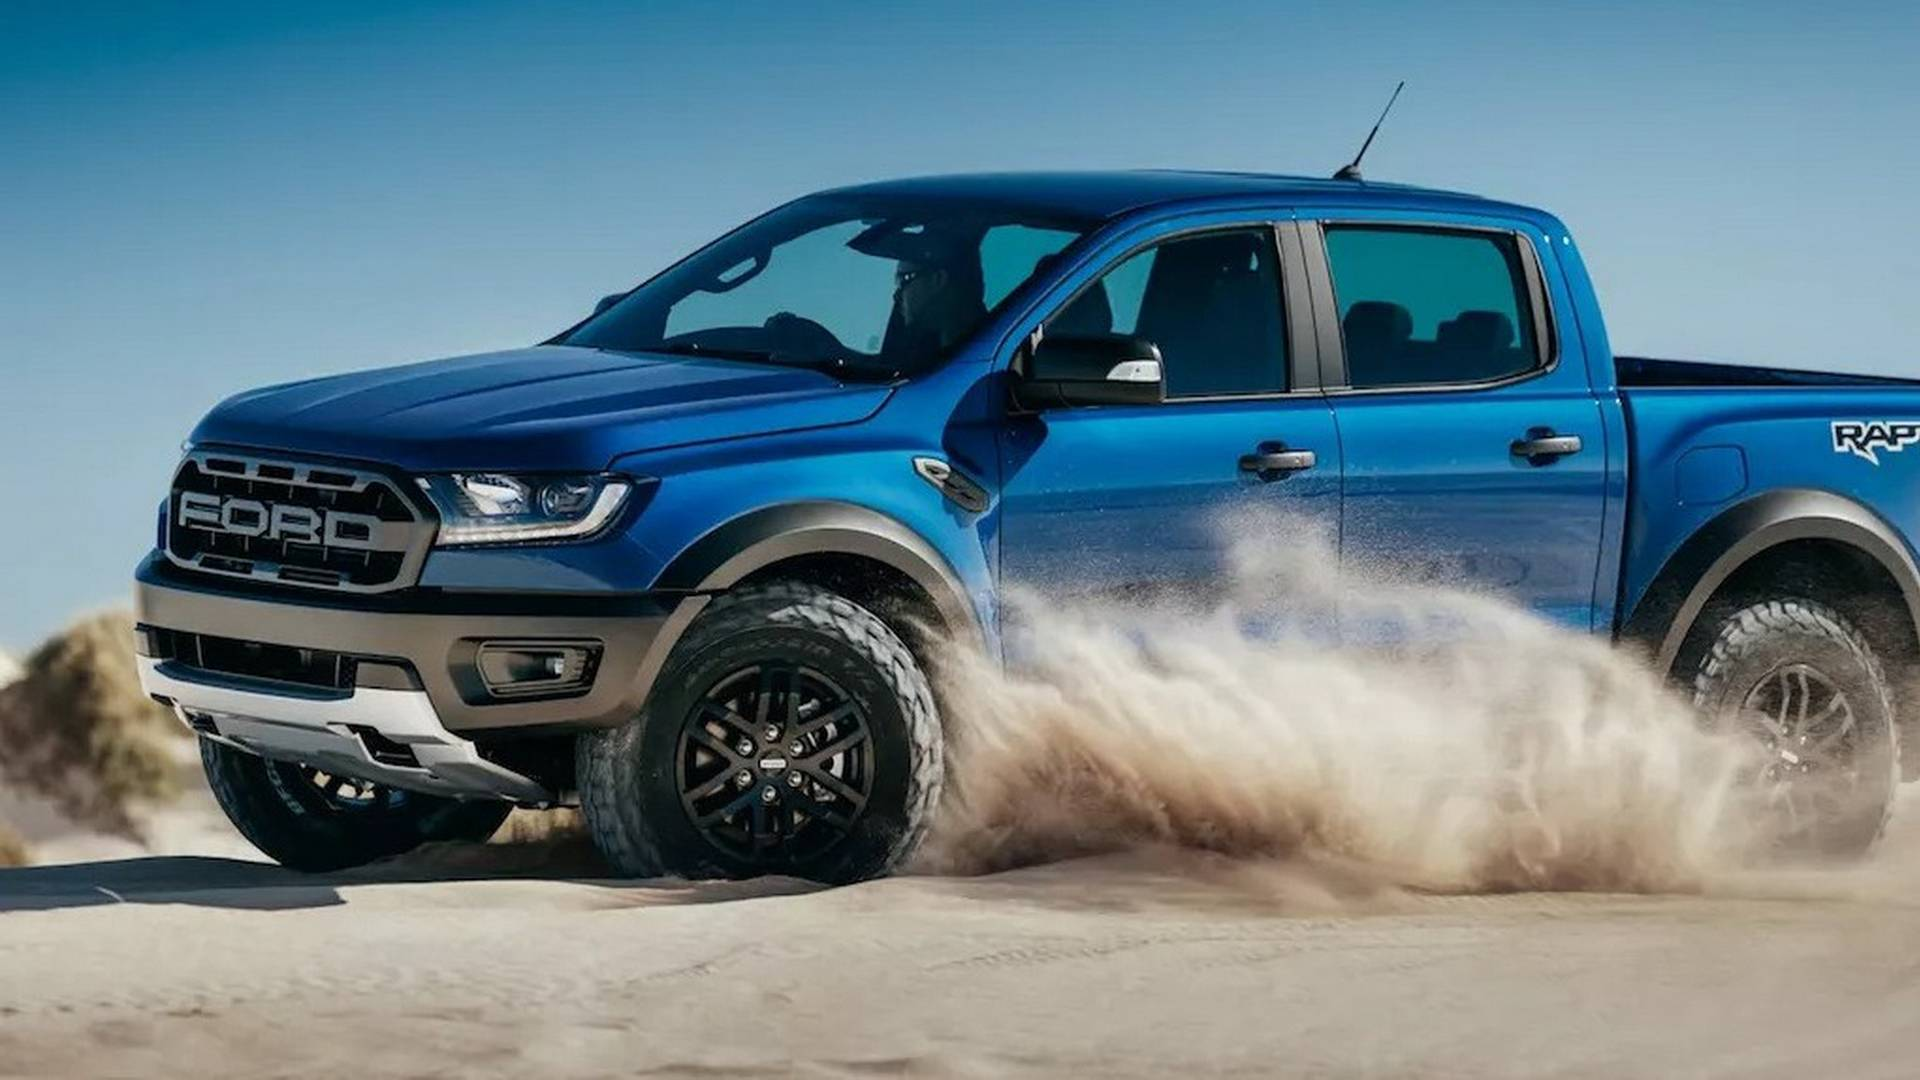 Ford Ranger Raptor With V6 Engine Is Out Of The Question